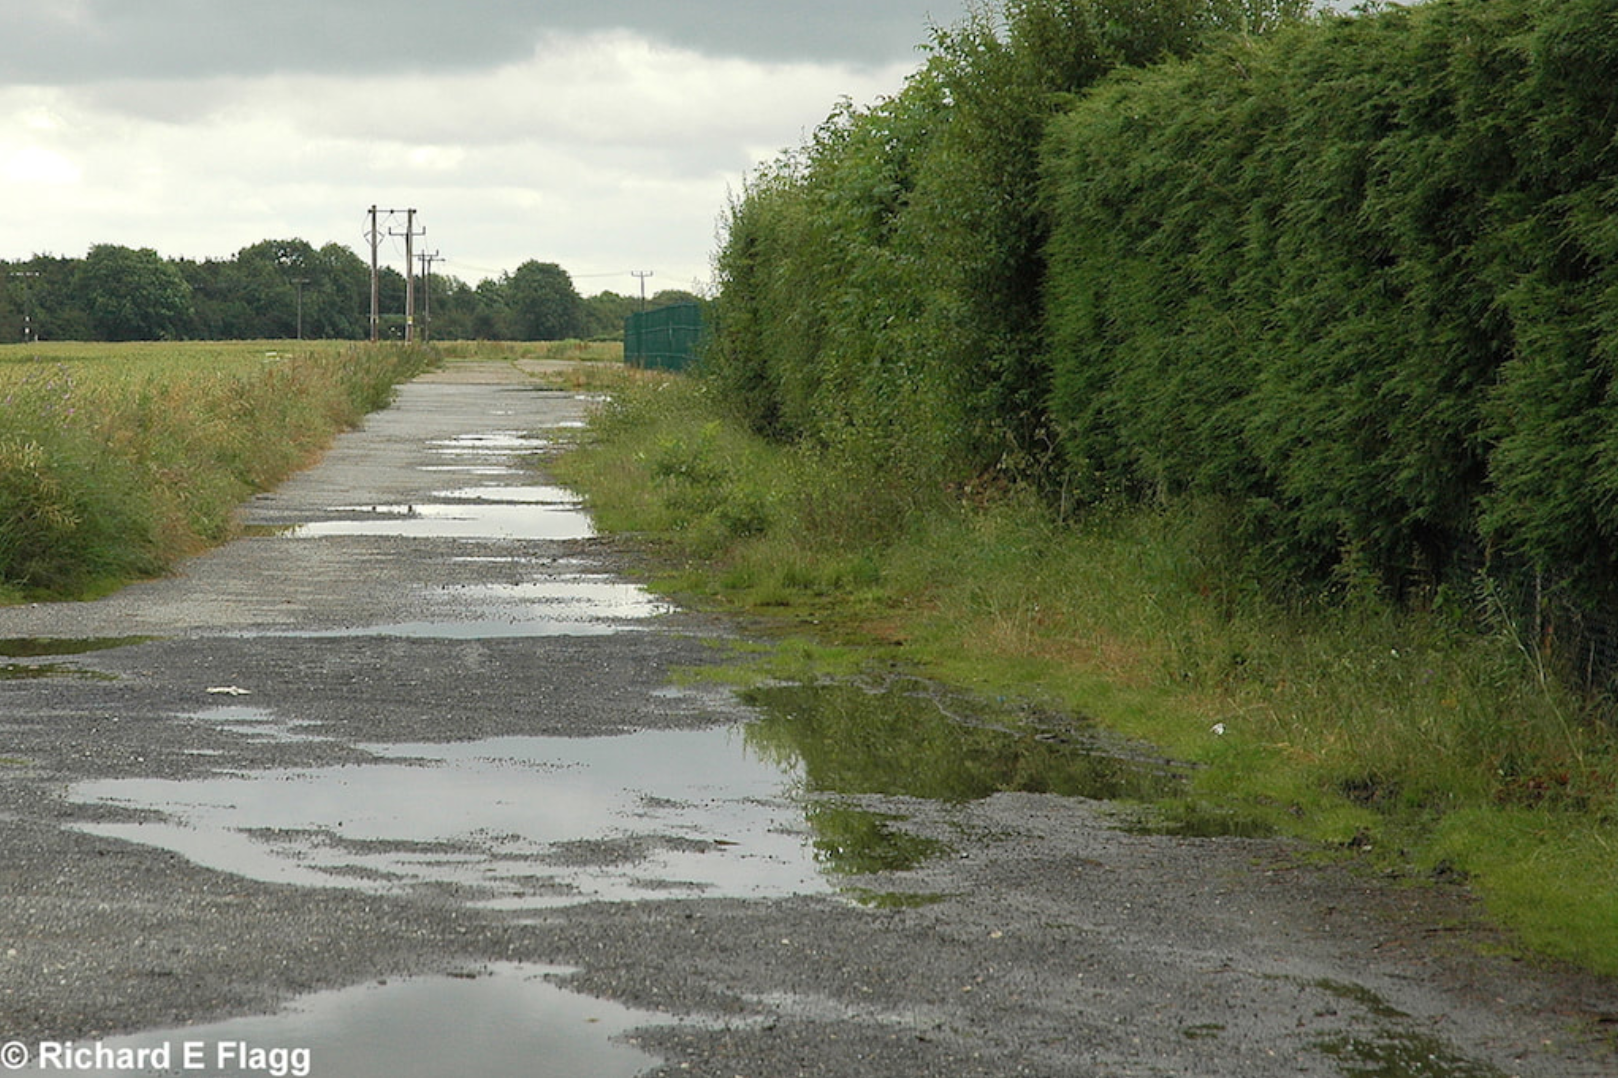 004Taxiway at the south of the airfield. Looking east from Reepham Road - 1 July 2007.png